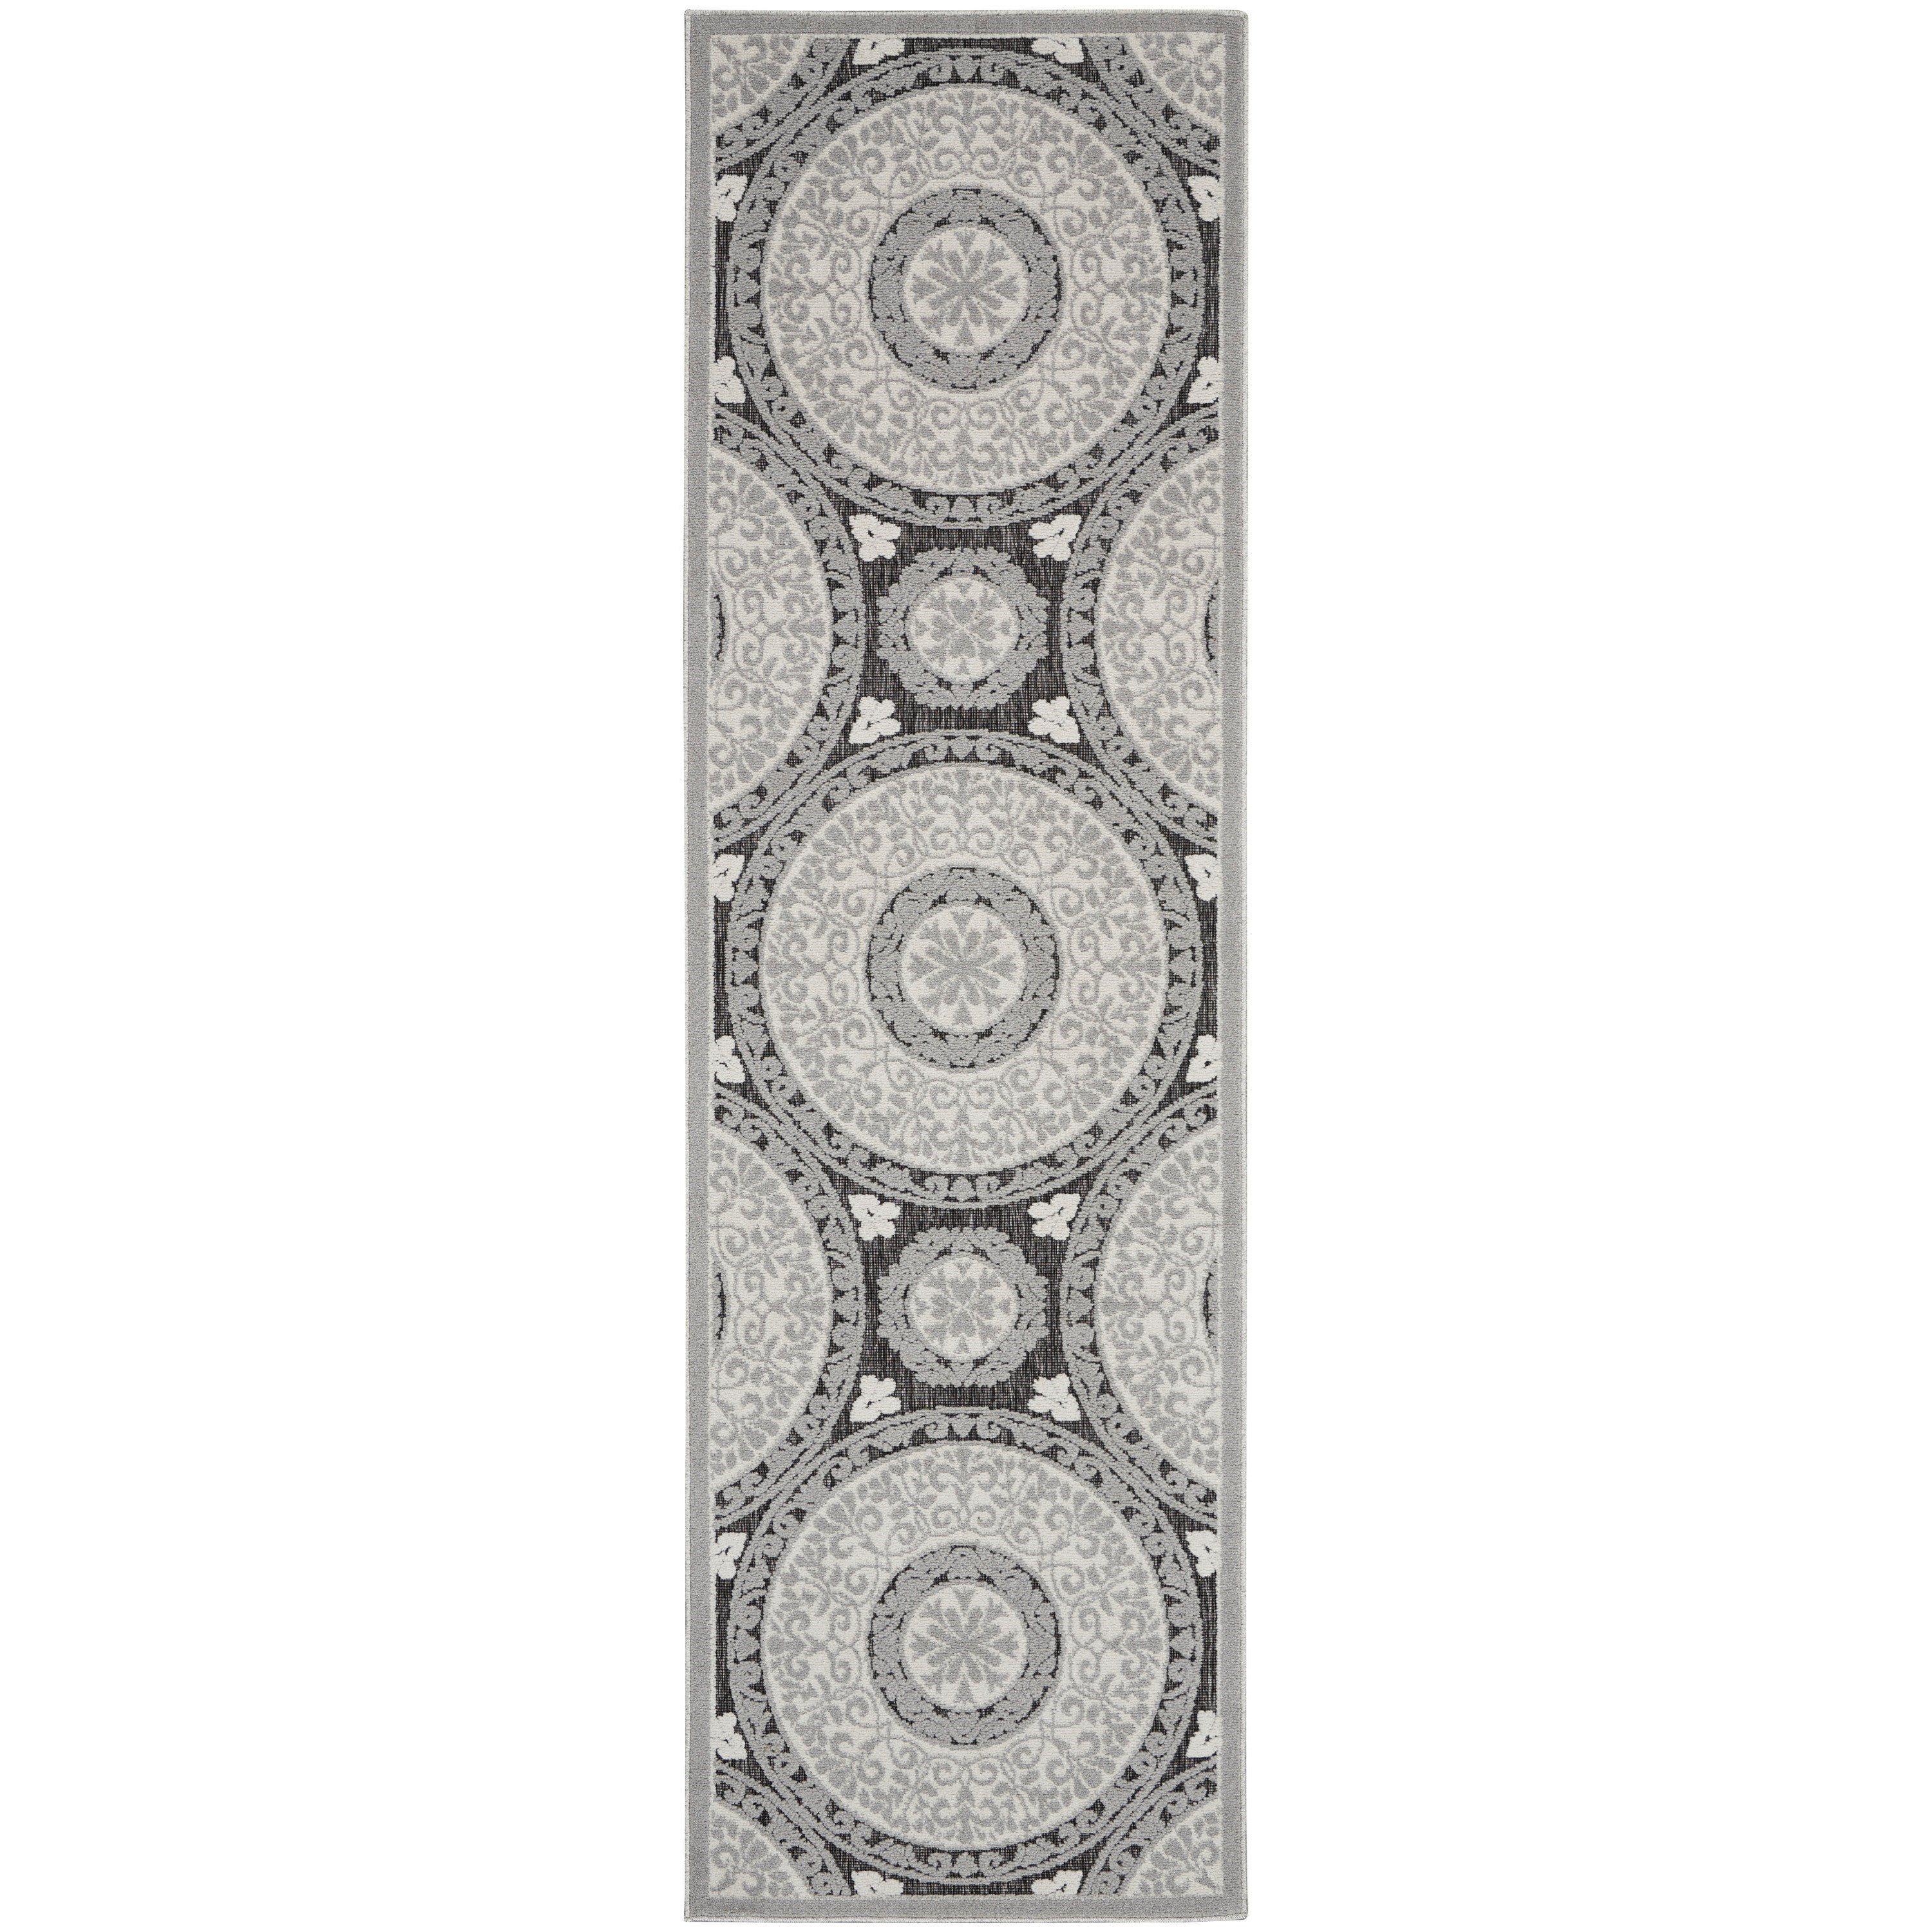 Key Largo 2020 10' Runner Rug by Nourison at Home Collections Furniture